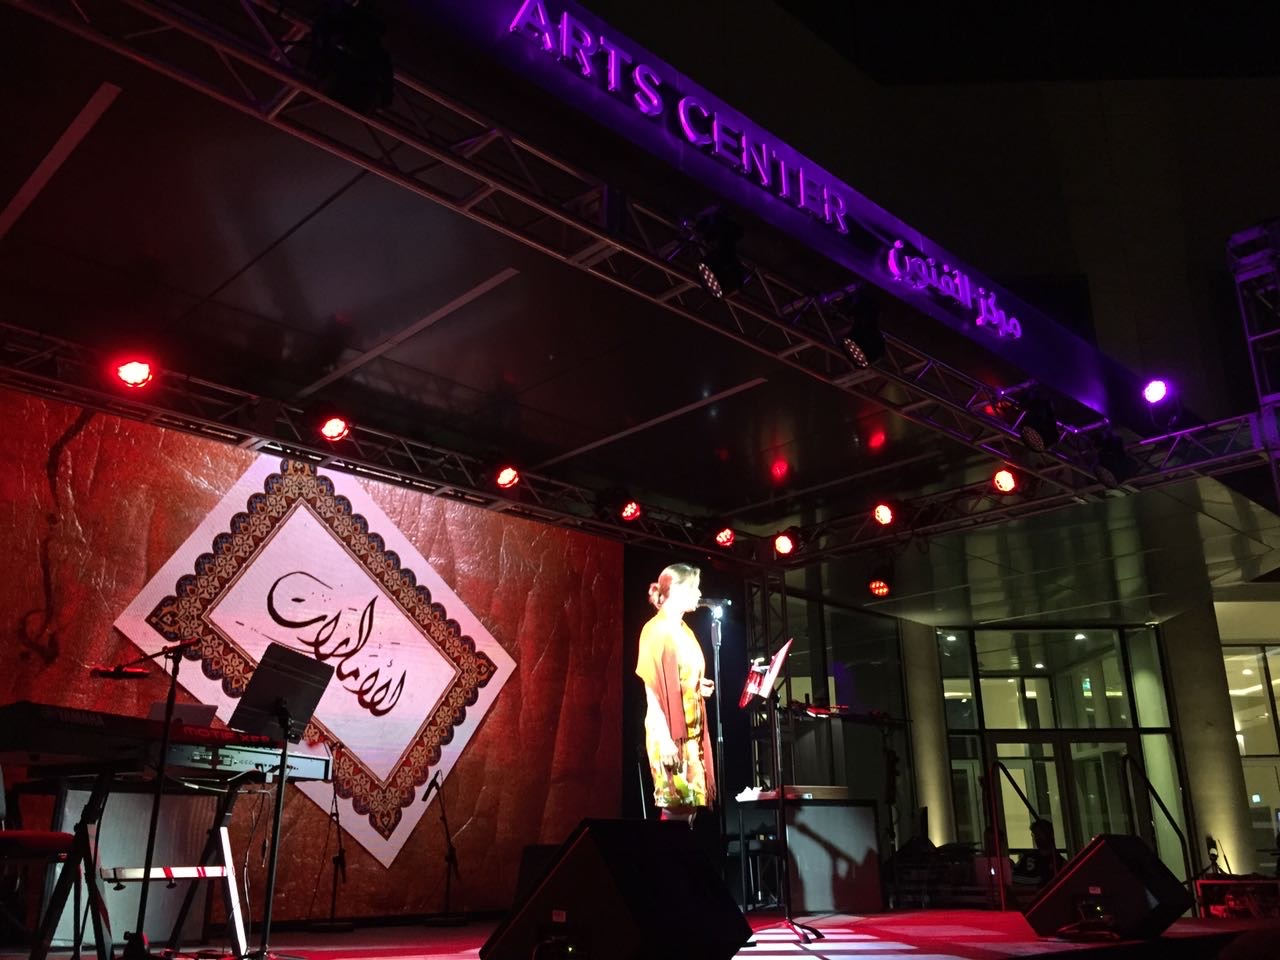 Dina Hardy & the Arts Center stage